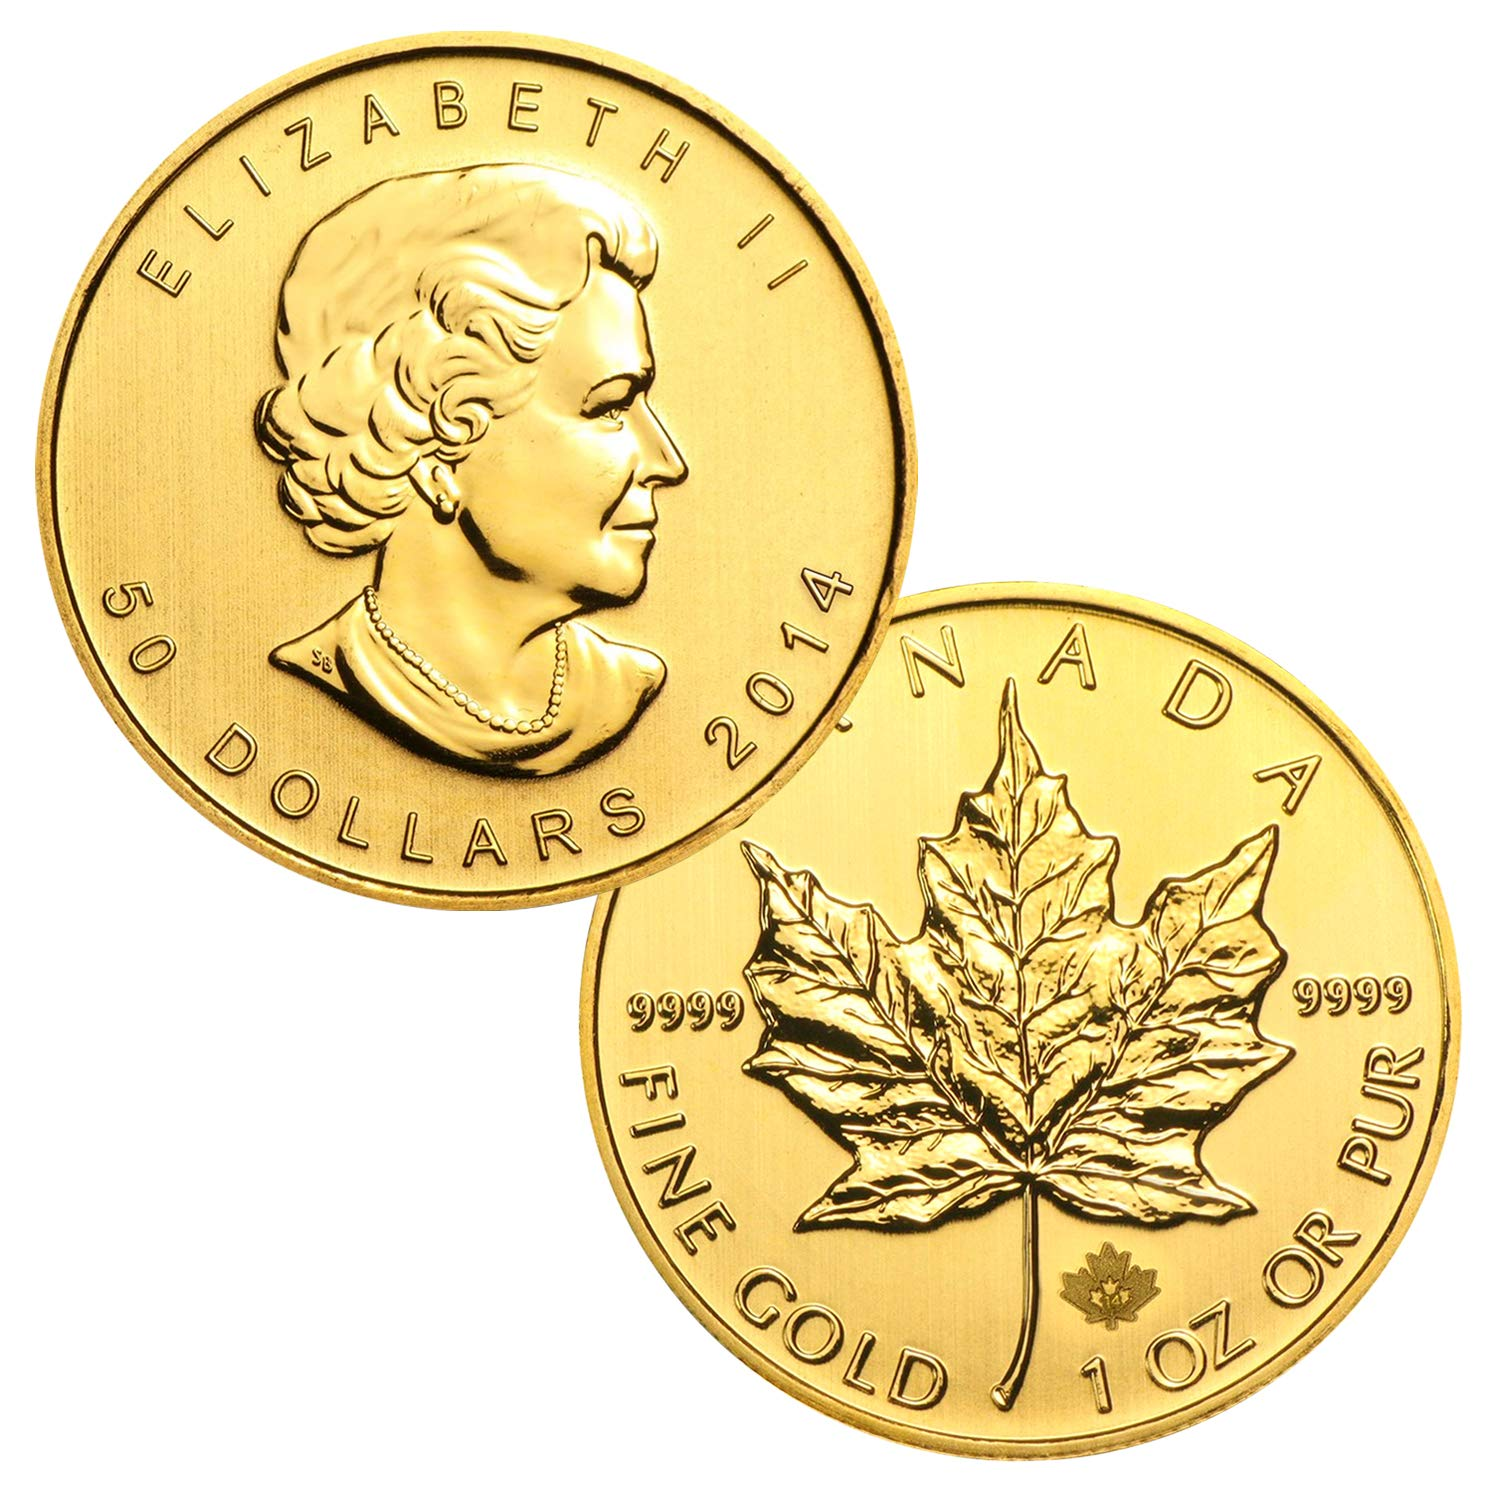 Brilliant Uncirculated 2011 Canada 1 Dollar From Mint/'s Roll